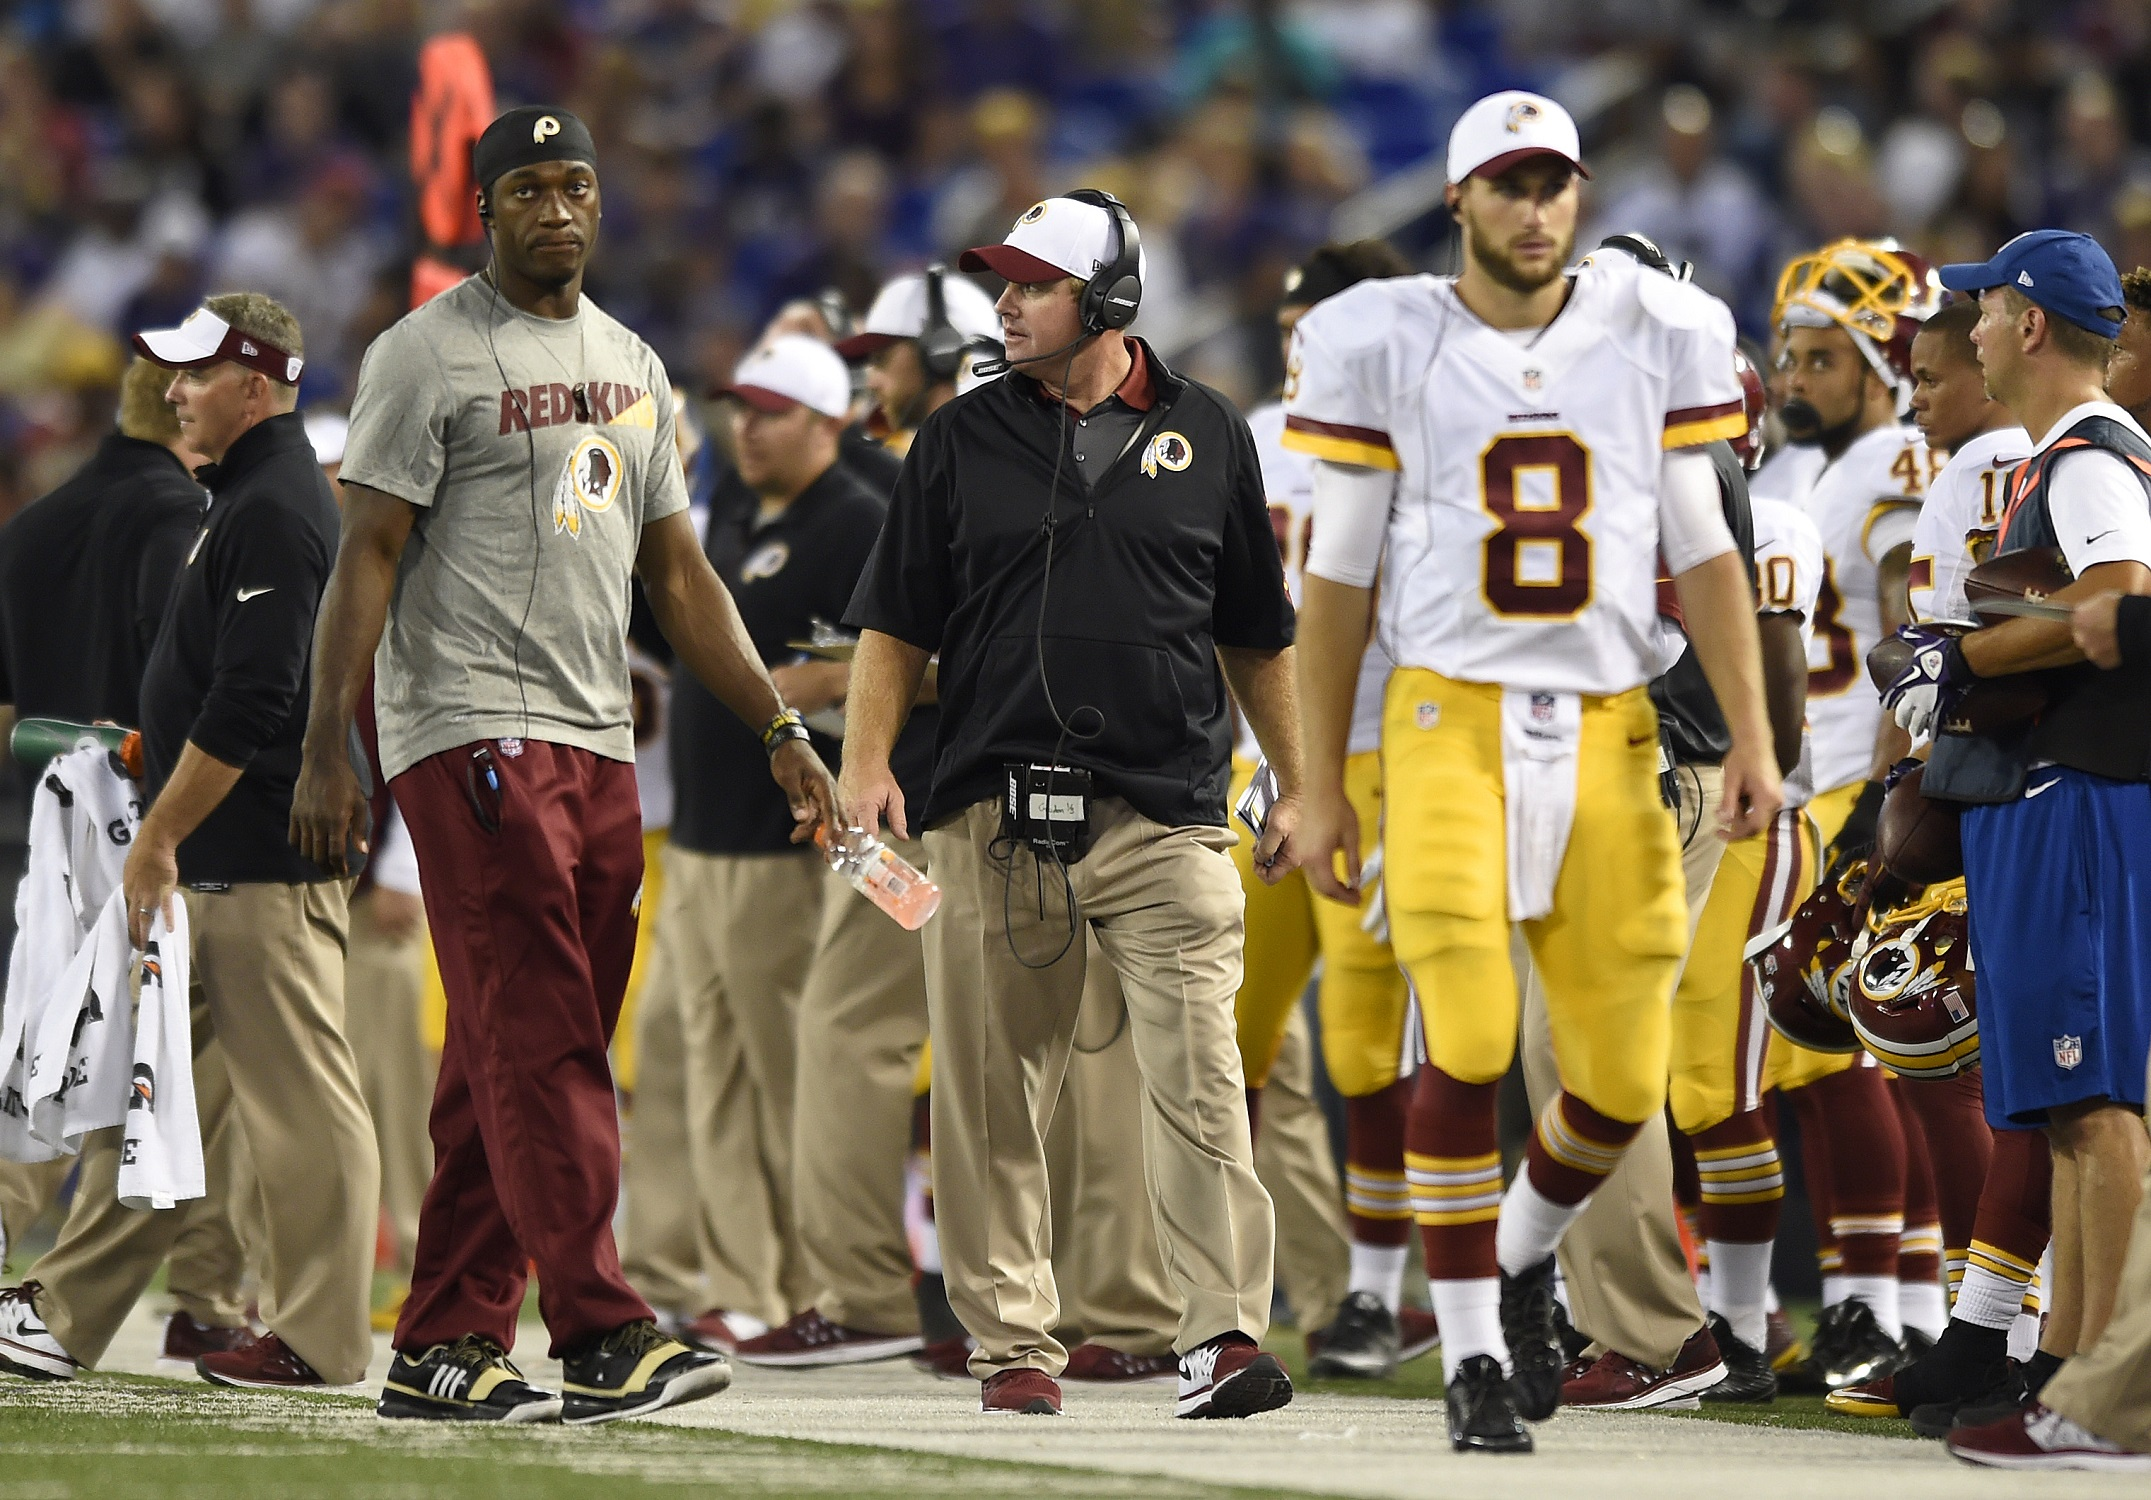 Latest from Redskins Park: 'It's Kirk's team'